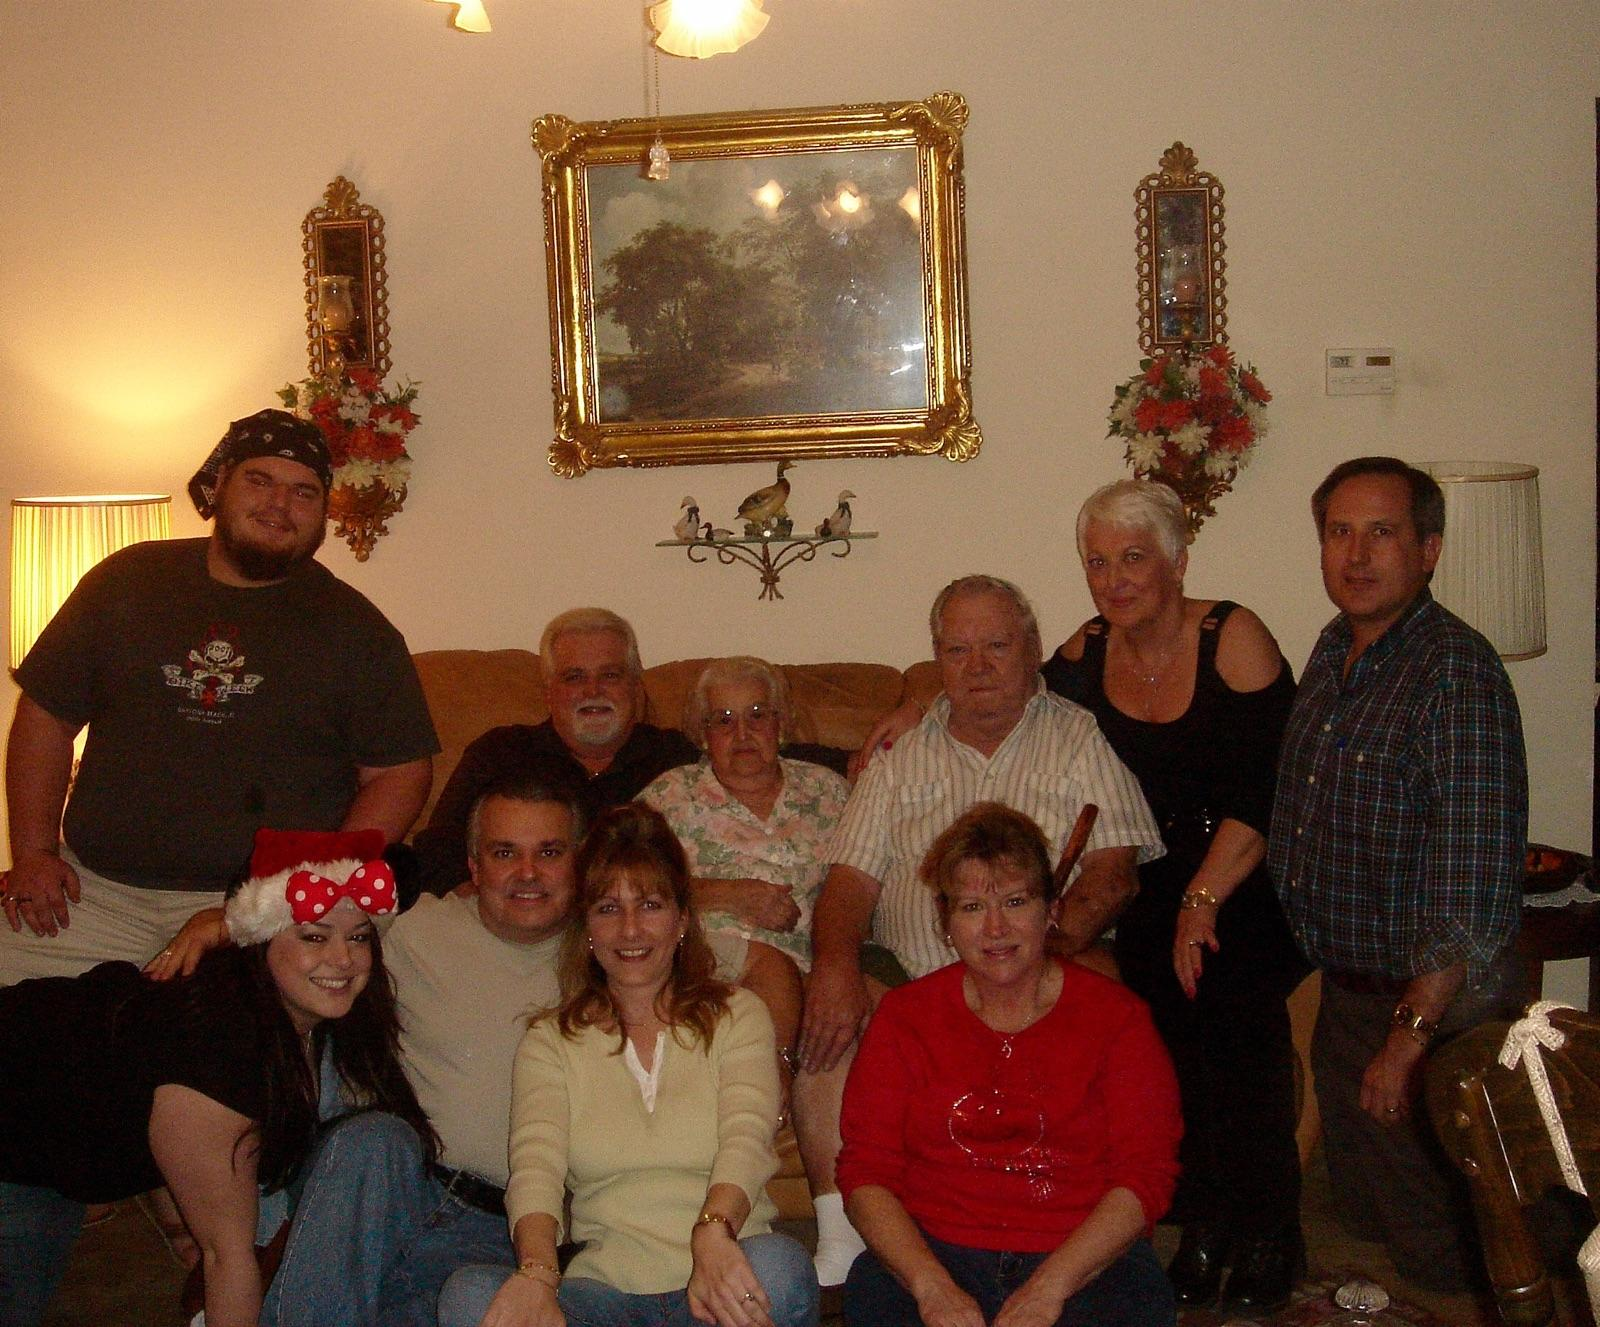 One of the only full family pics I have. Grandma will be missed forever. We will always remember her love and kindness.